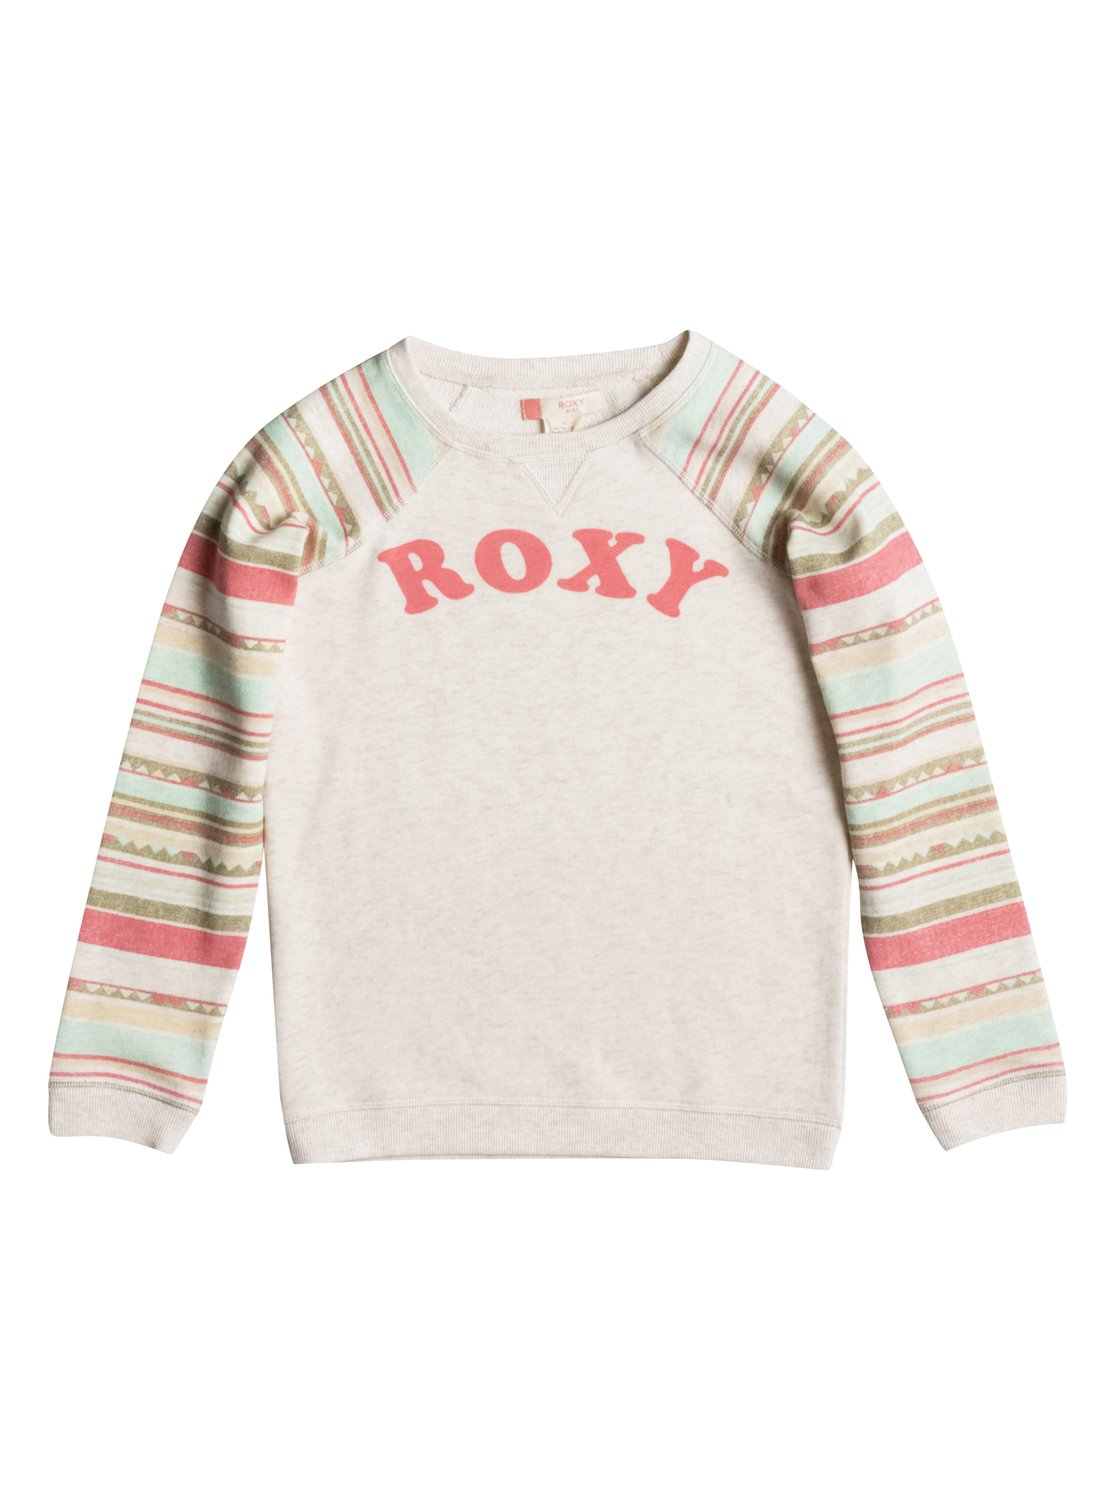 Kaukura - Sweat pour Fille - Roxy